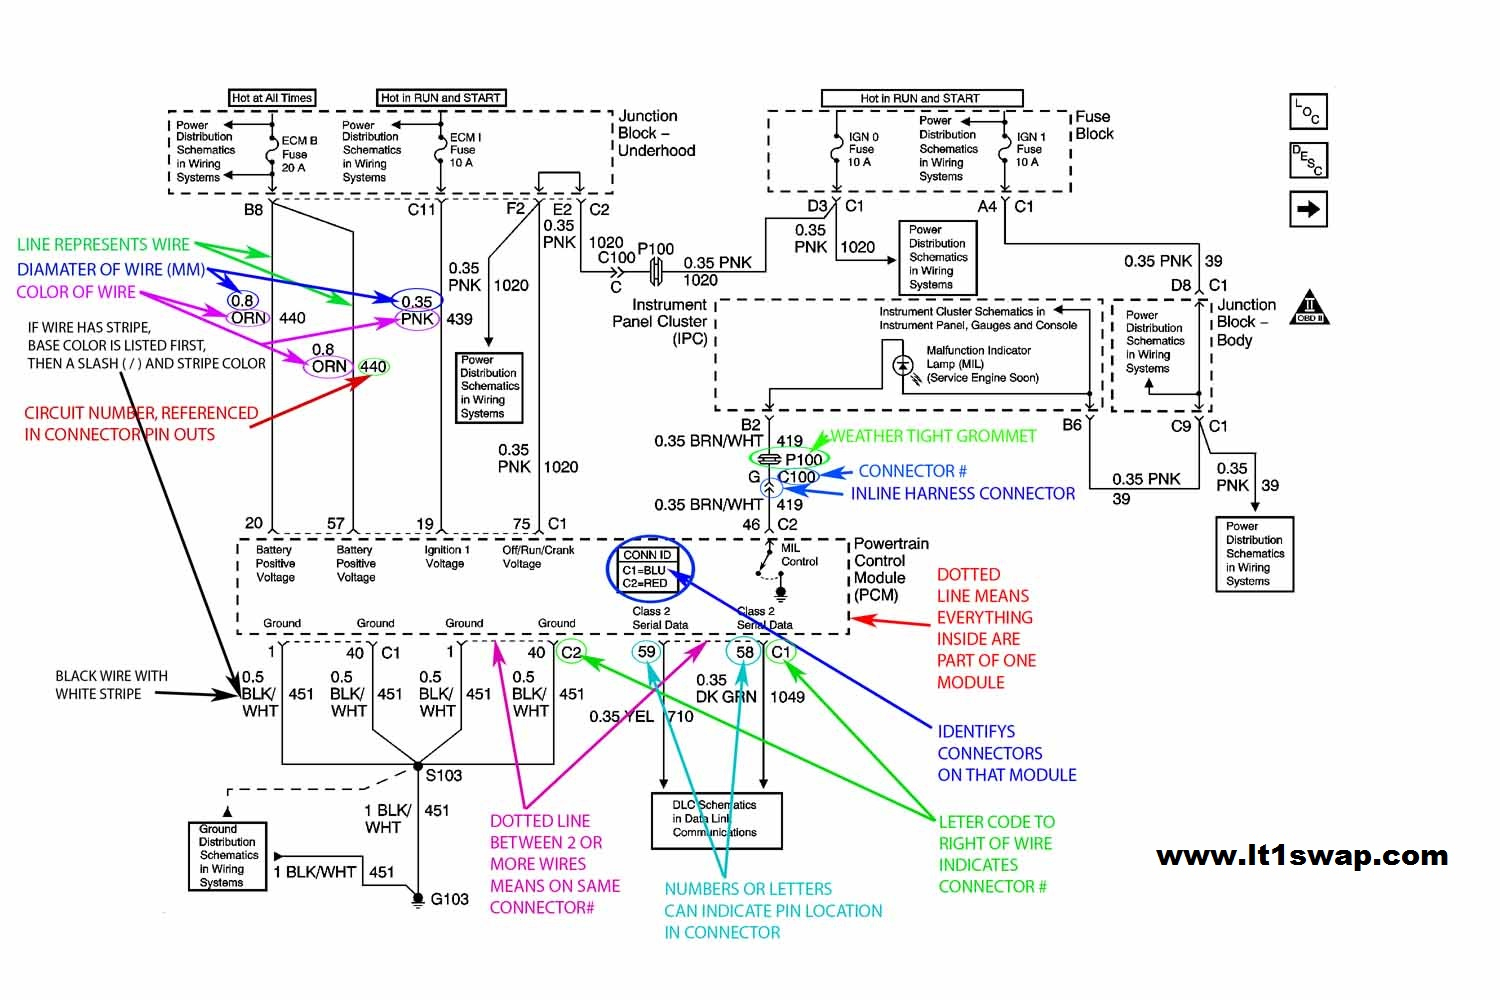 Wiring Harness Information - Ls Standalone Wiring Harness Diagram